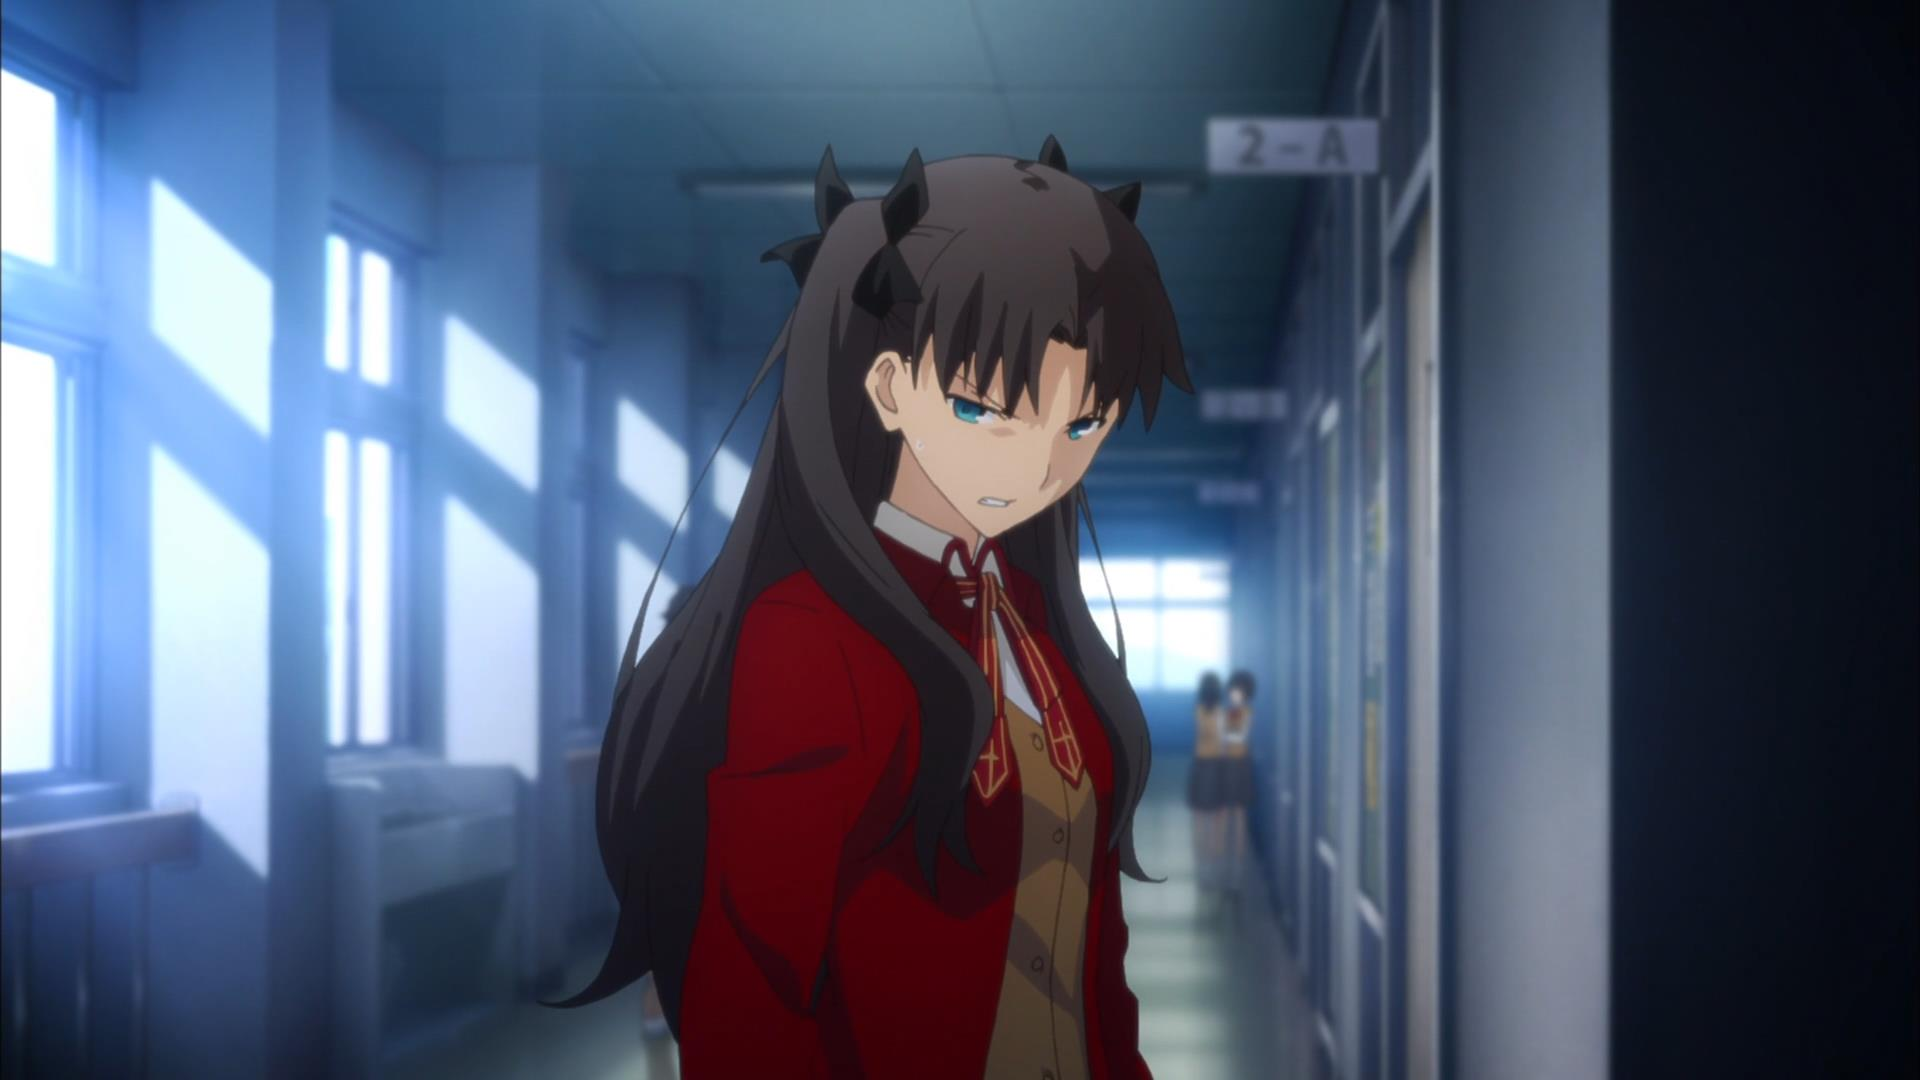 Fate/stay night: Unlimited Blade Works - 05